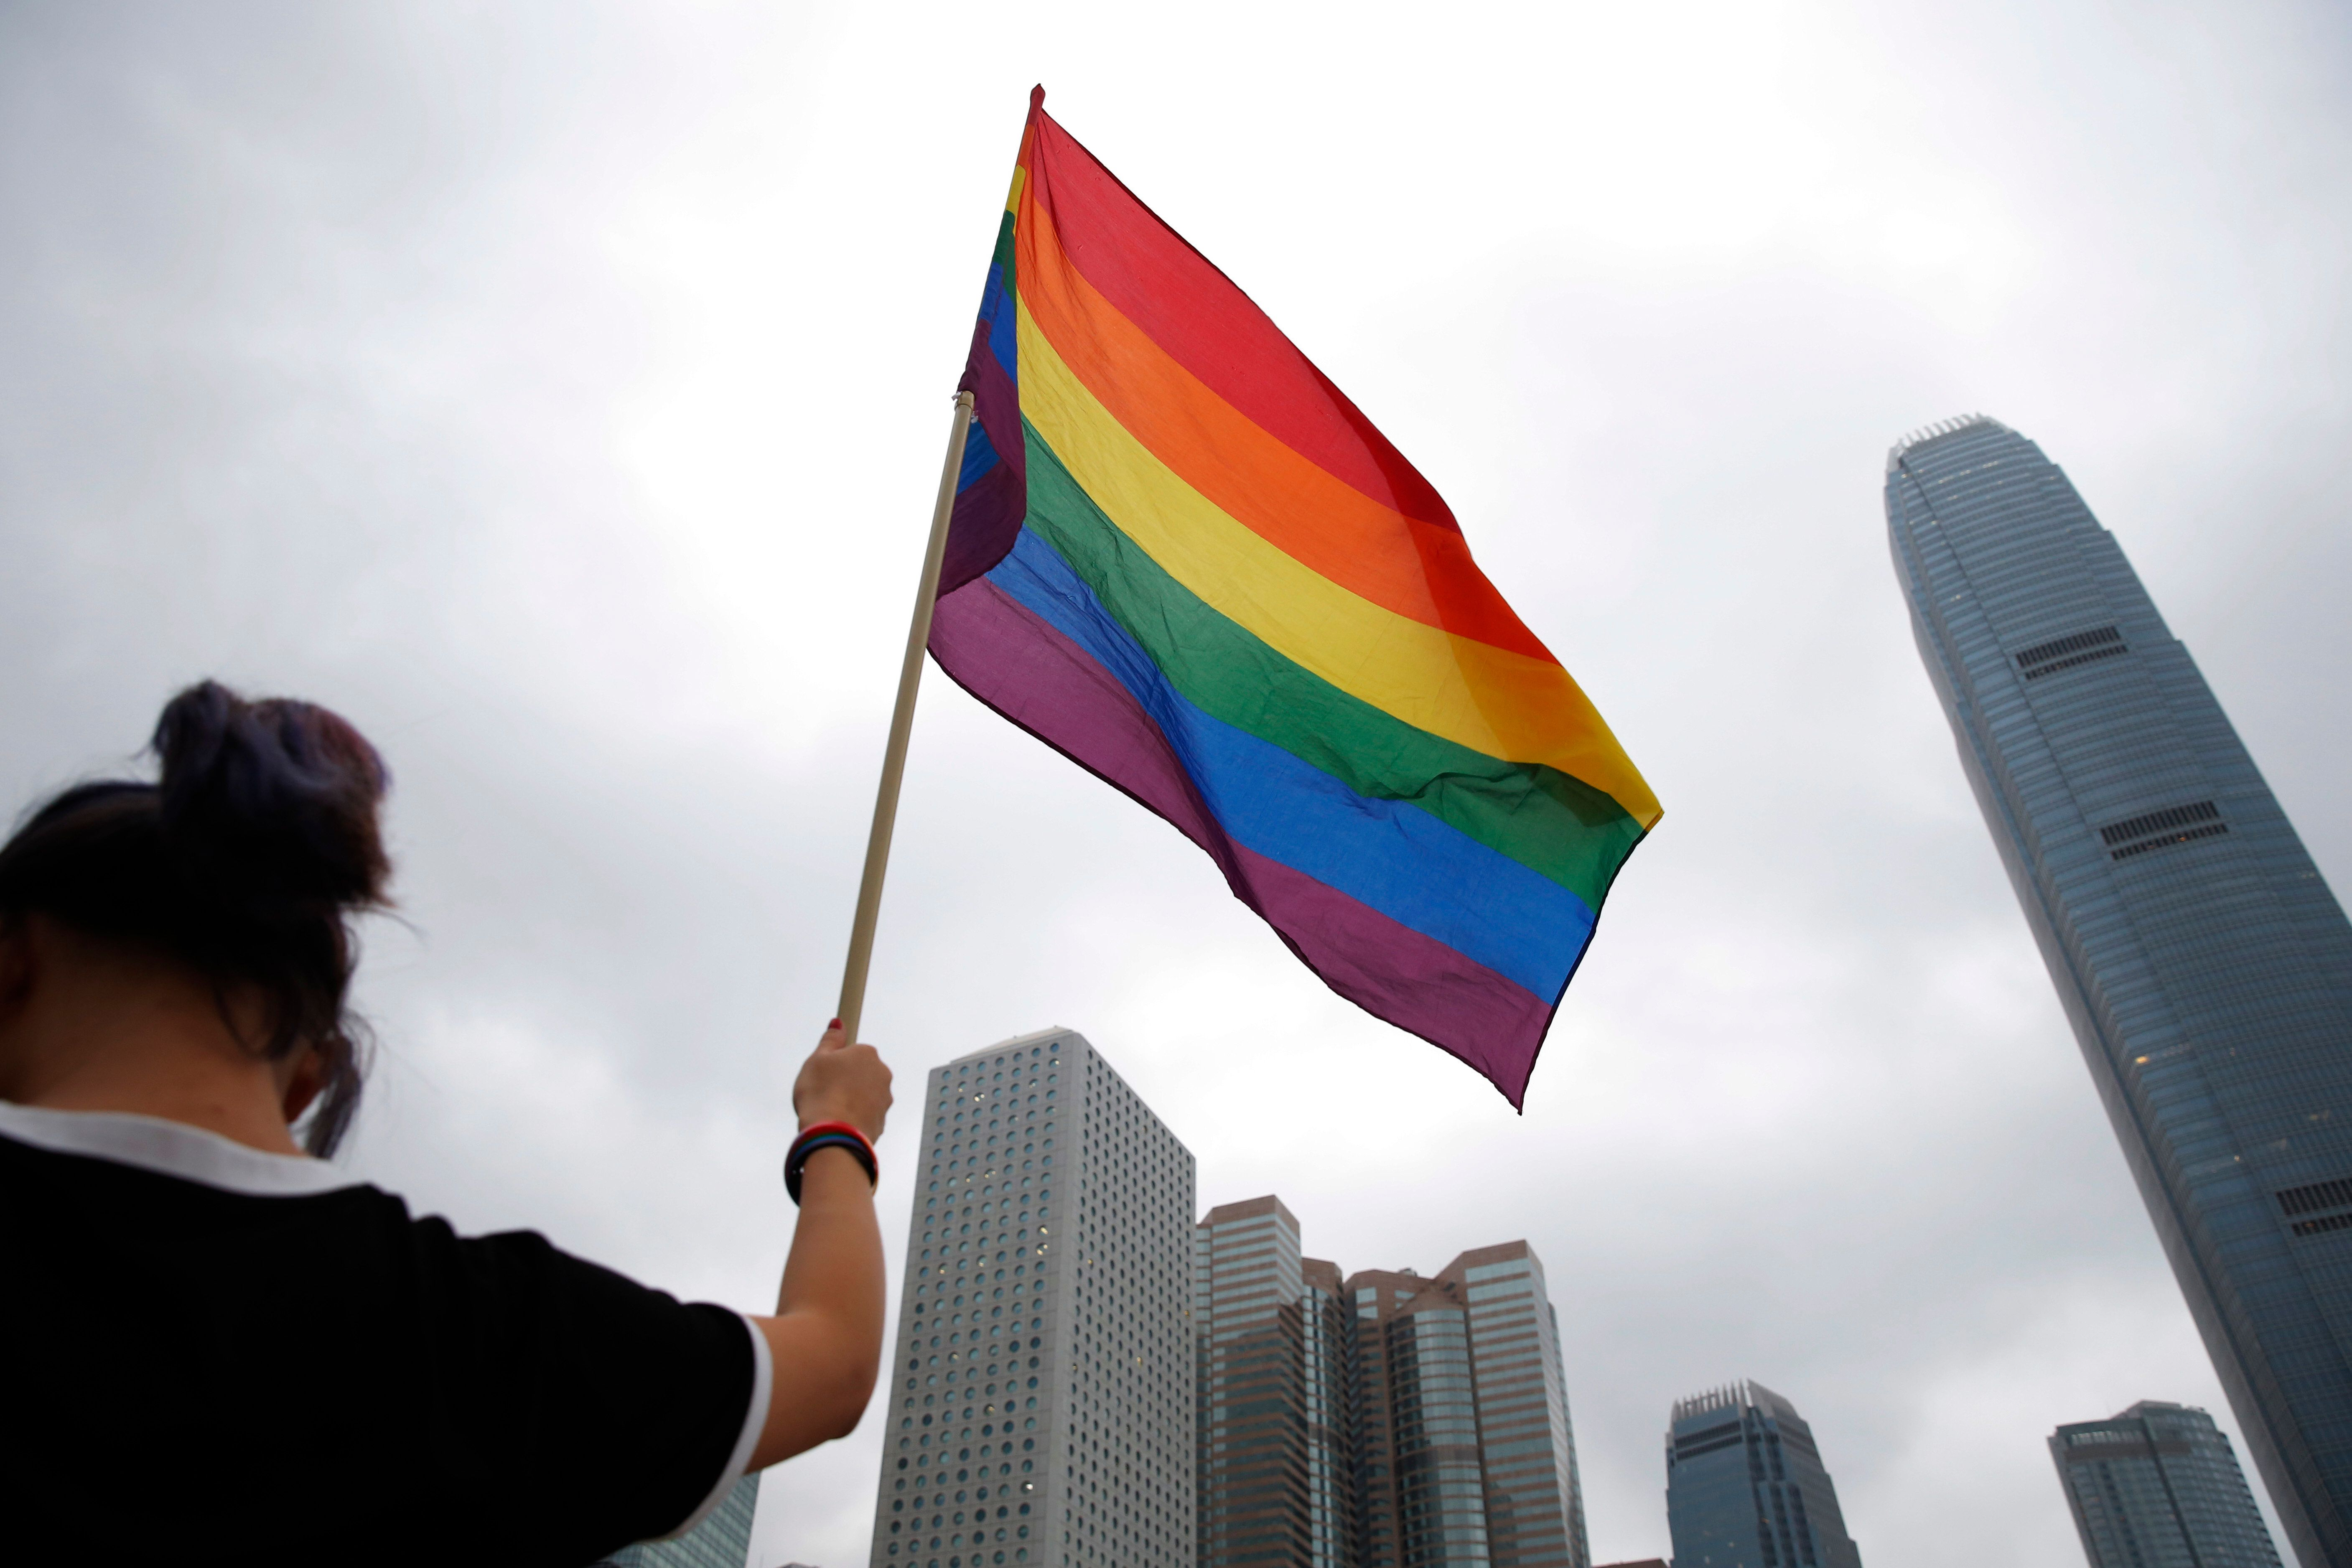 A participant holds rainbow flag at the annual Pride Parade In Hong Kong, Saturday, Nov. 17, 2018. Thousands of supporters and members of the Lesbian, Gay, Bisexual, Transgender (LGBT) community in Hong Kong gathered on Saturday to participate in the annual Pride Parade. (AP Photo/Kin Cheung)